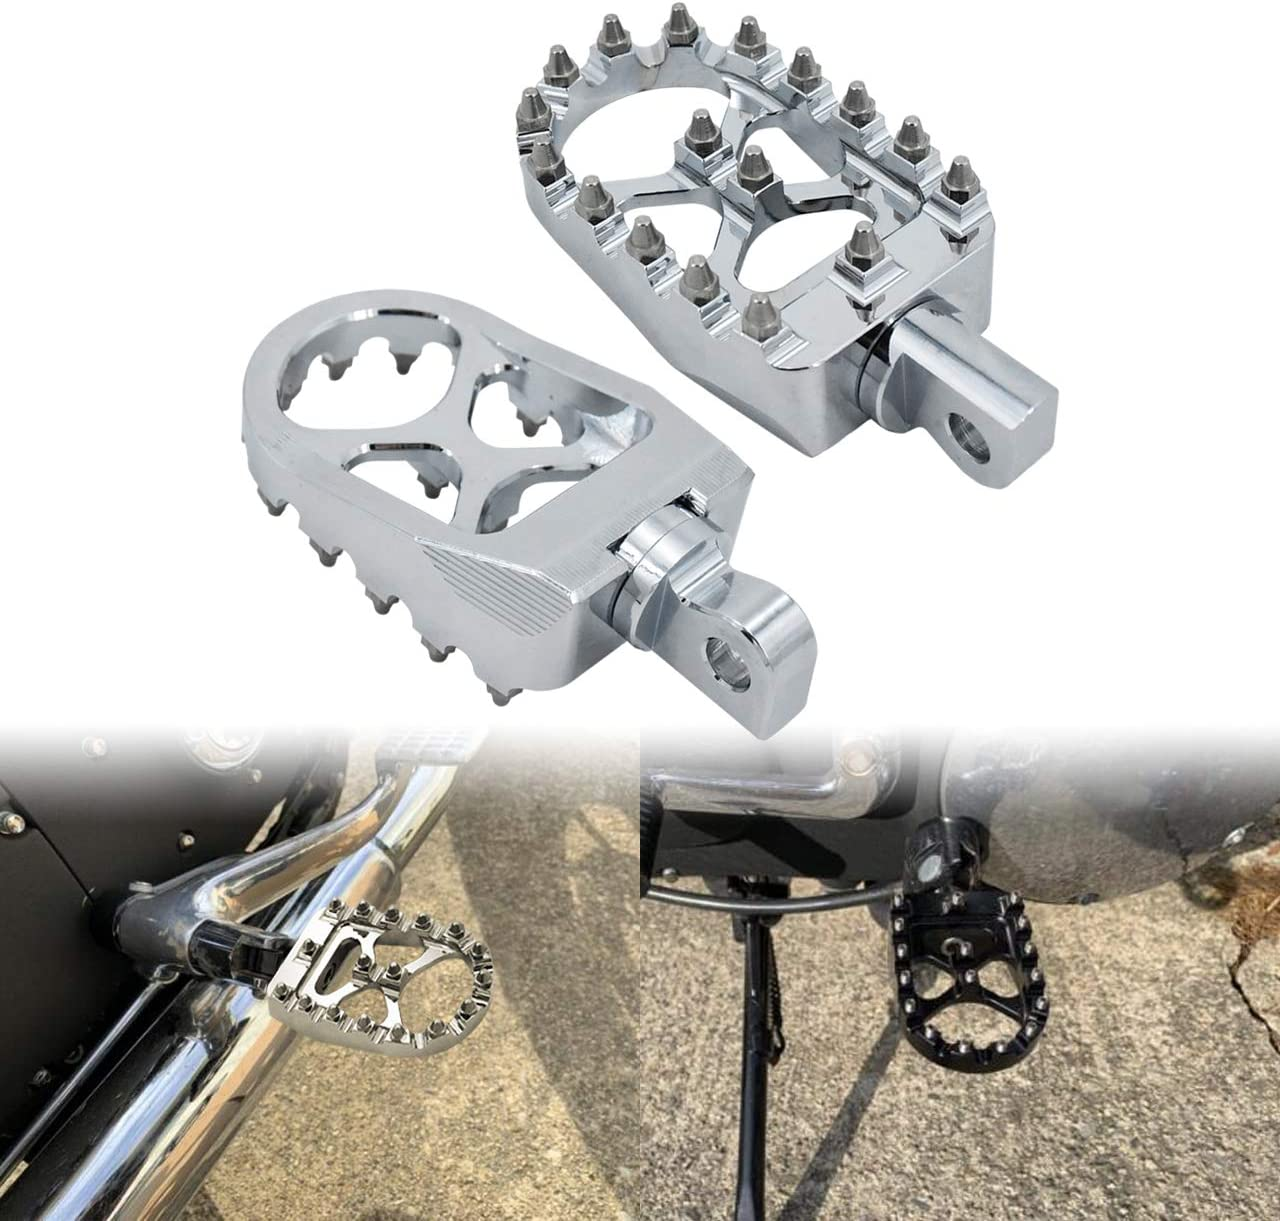 YHMTIVTU CNC Wide Foot Max 52% OFF Pegs At the price 360° Pe Roating Aluminum Footpegs